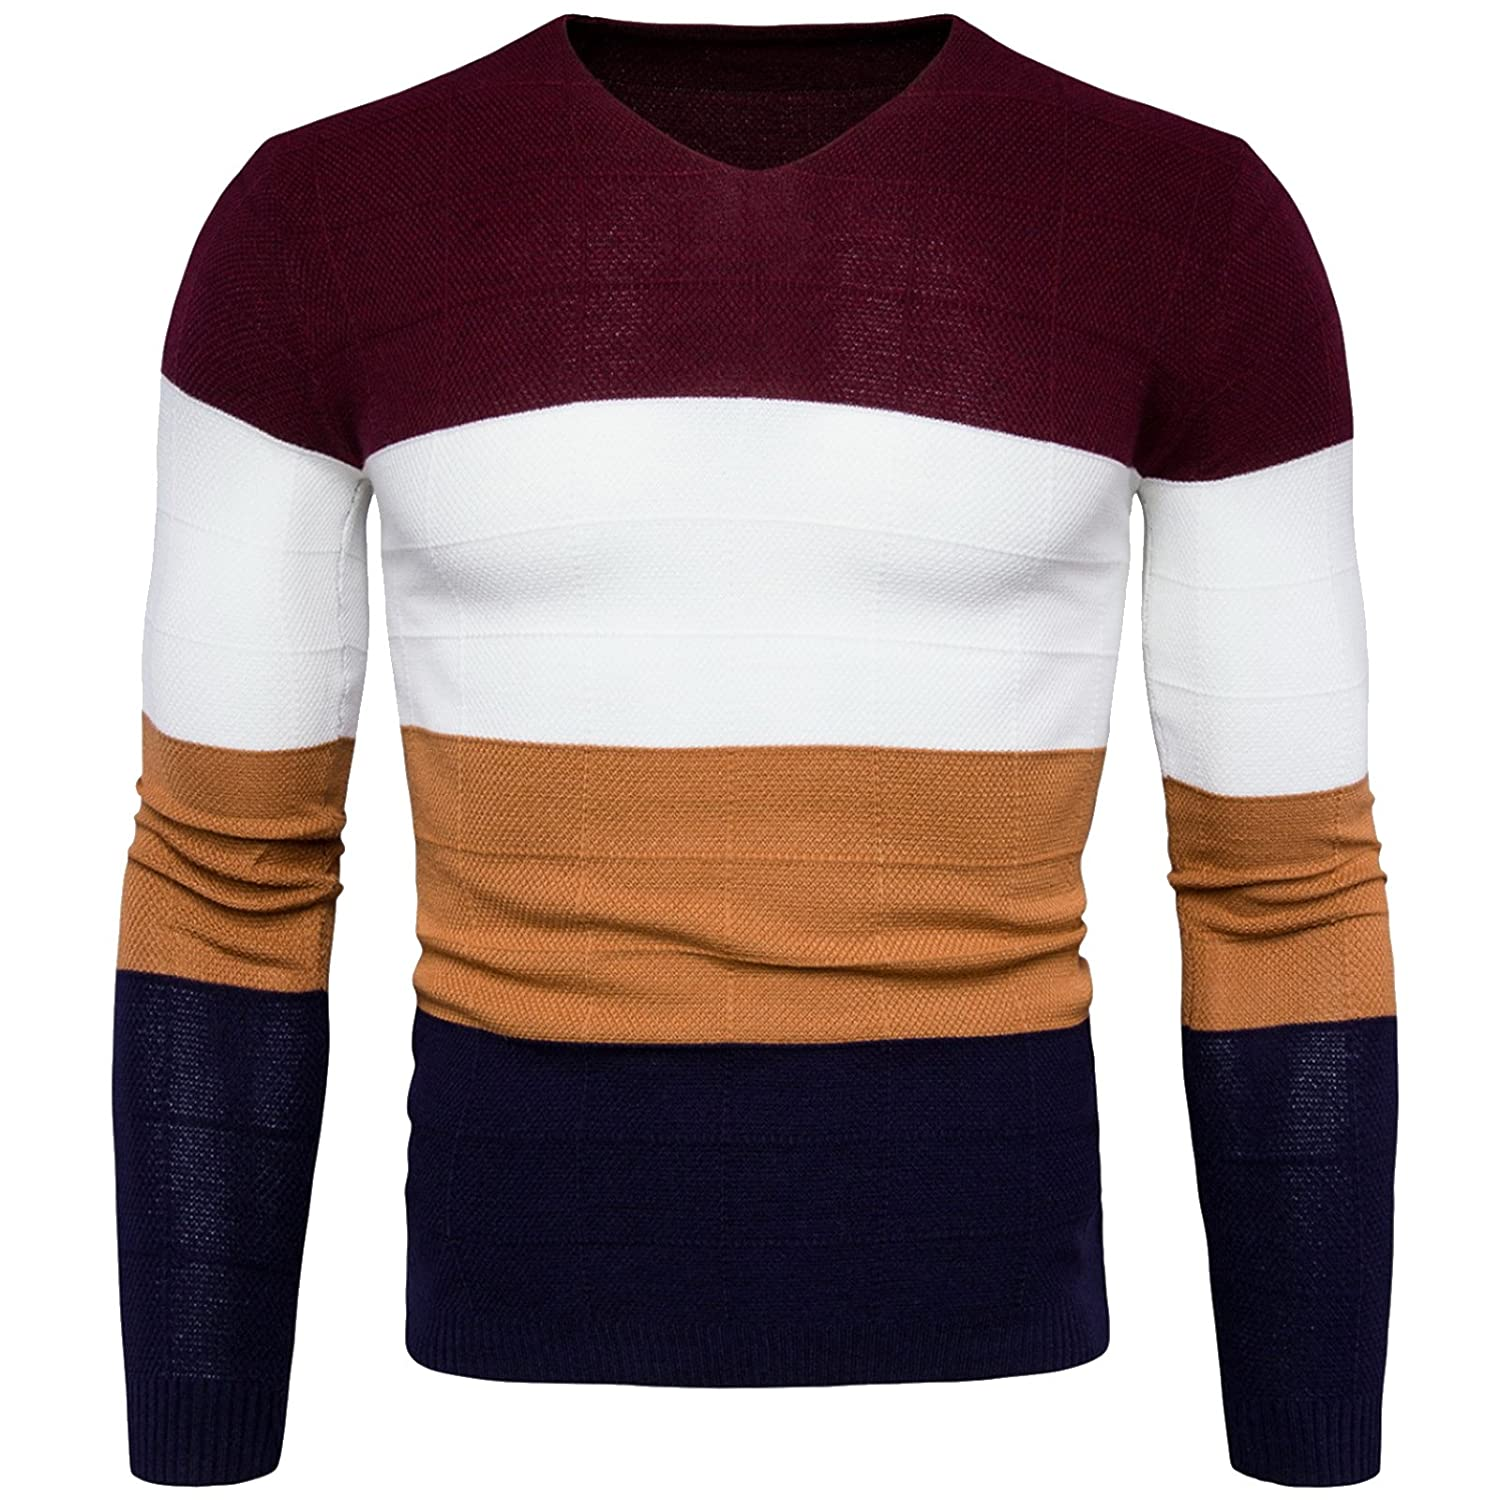 WSLCN Mens Chic Fine Knit V-Neck Coton Jumper Pullover Contrast Color Sweater AW-Y961